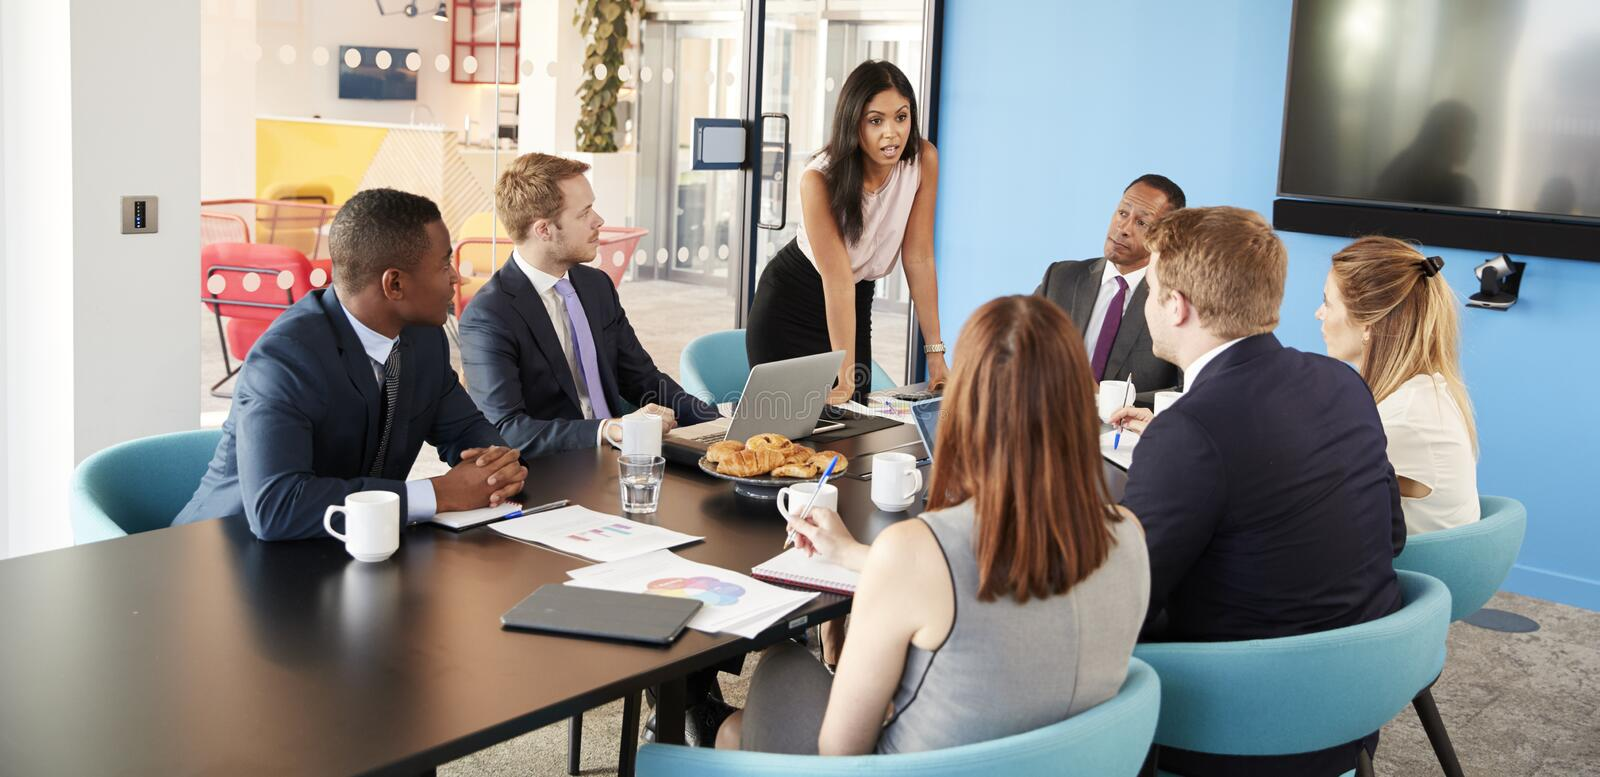 Female manager stands addressing colleagues in meeting room royalty free stock image